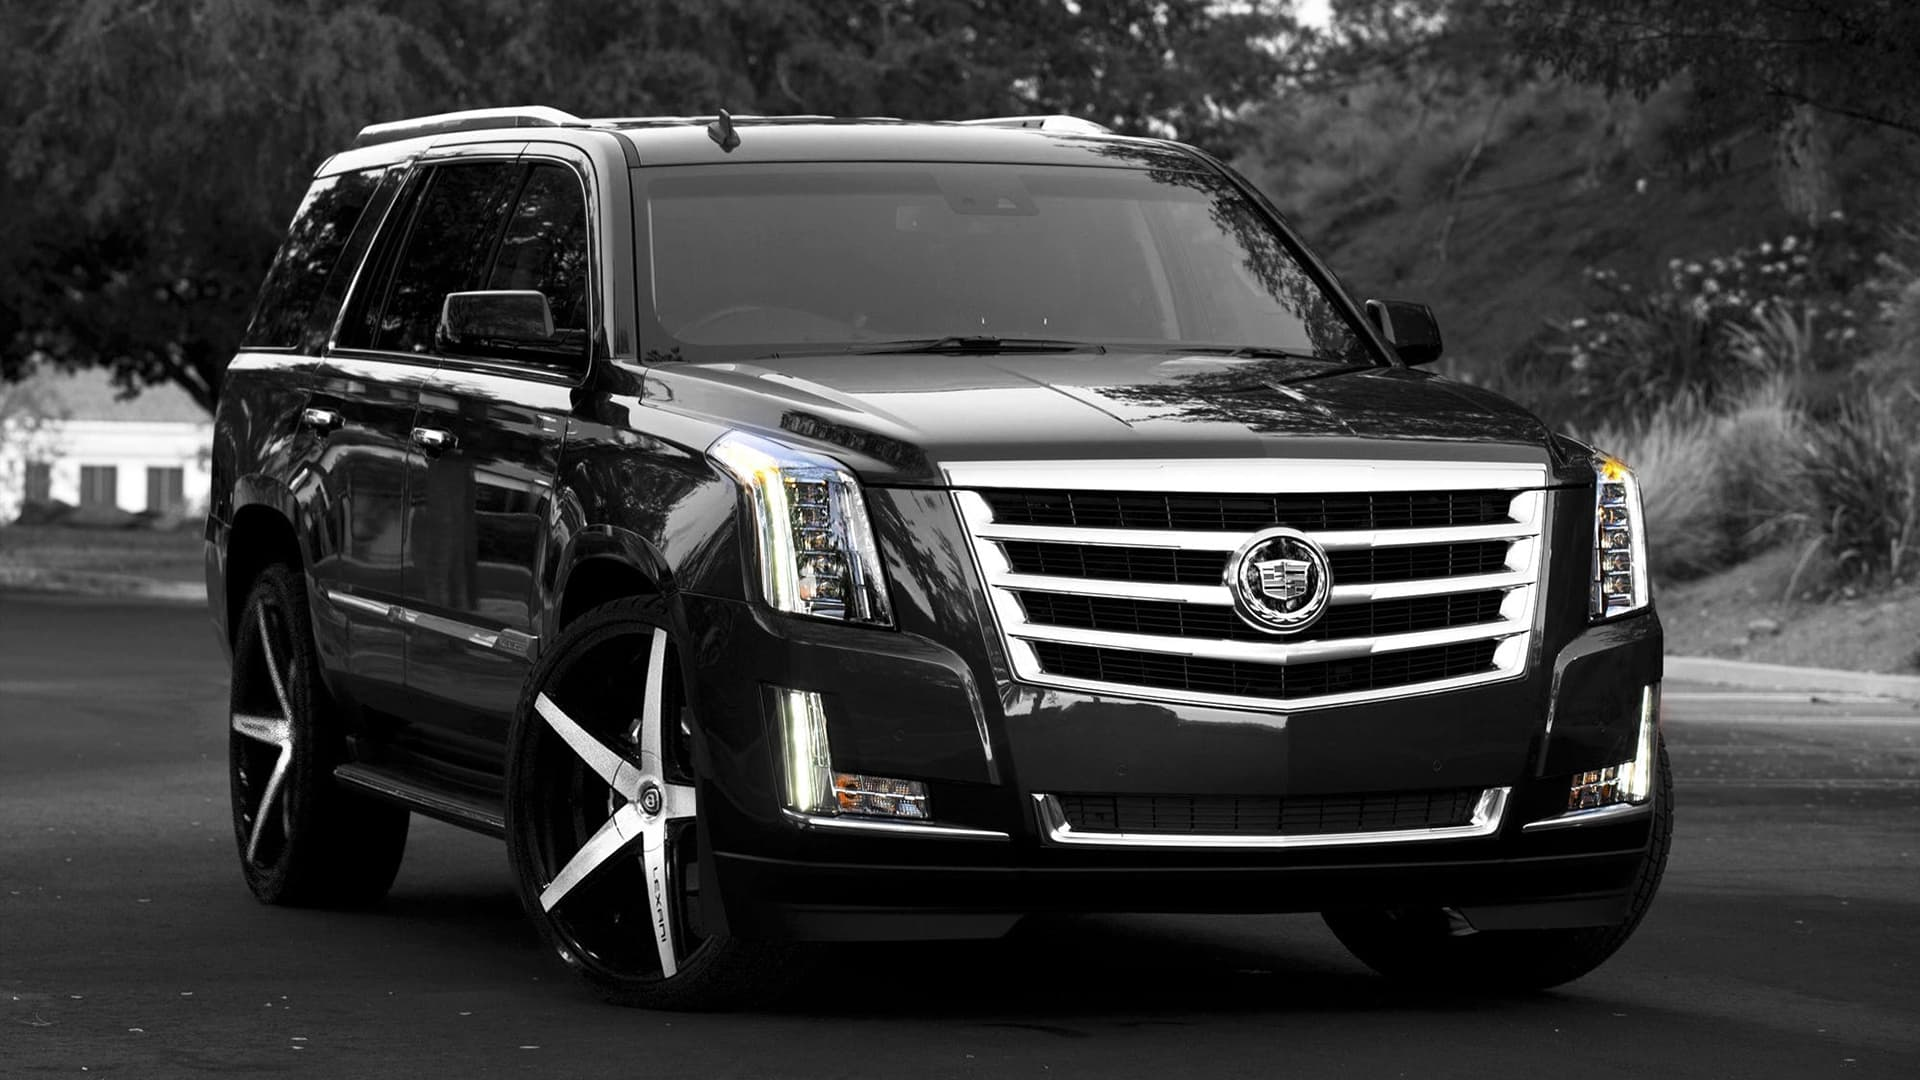 2007 Cadillac Escalade Fuse Box Wiring Library Diagram 2018 Fiyat 20 Wallpapers Hd